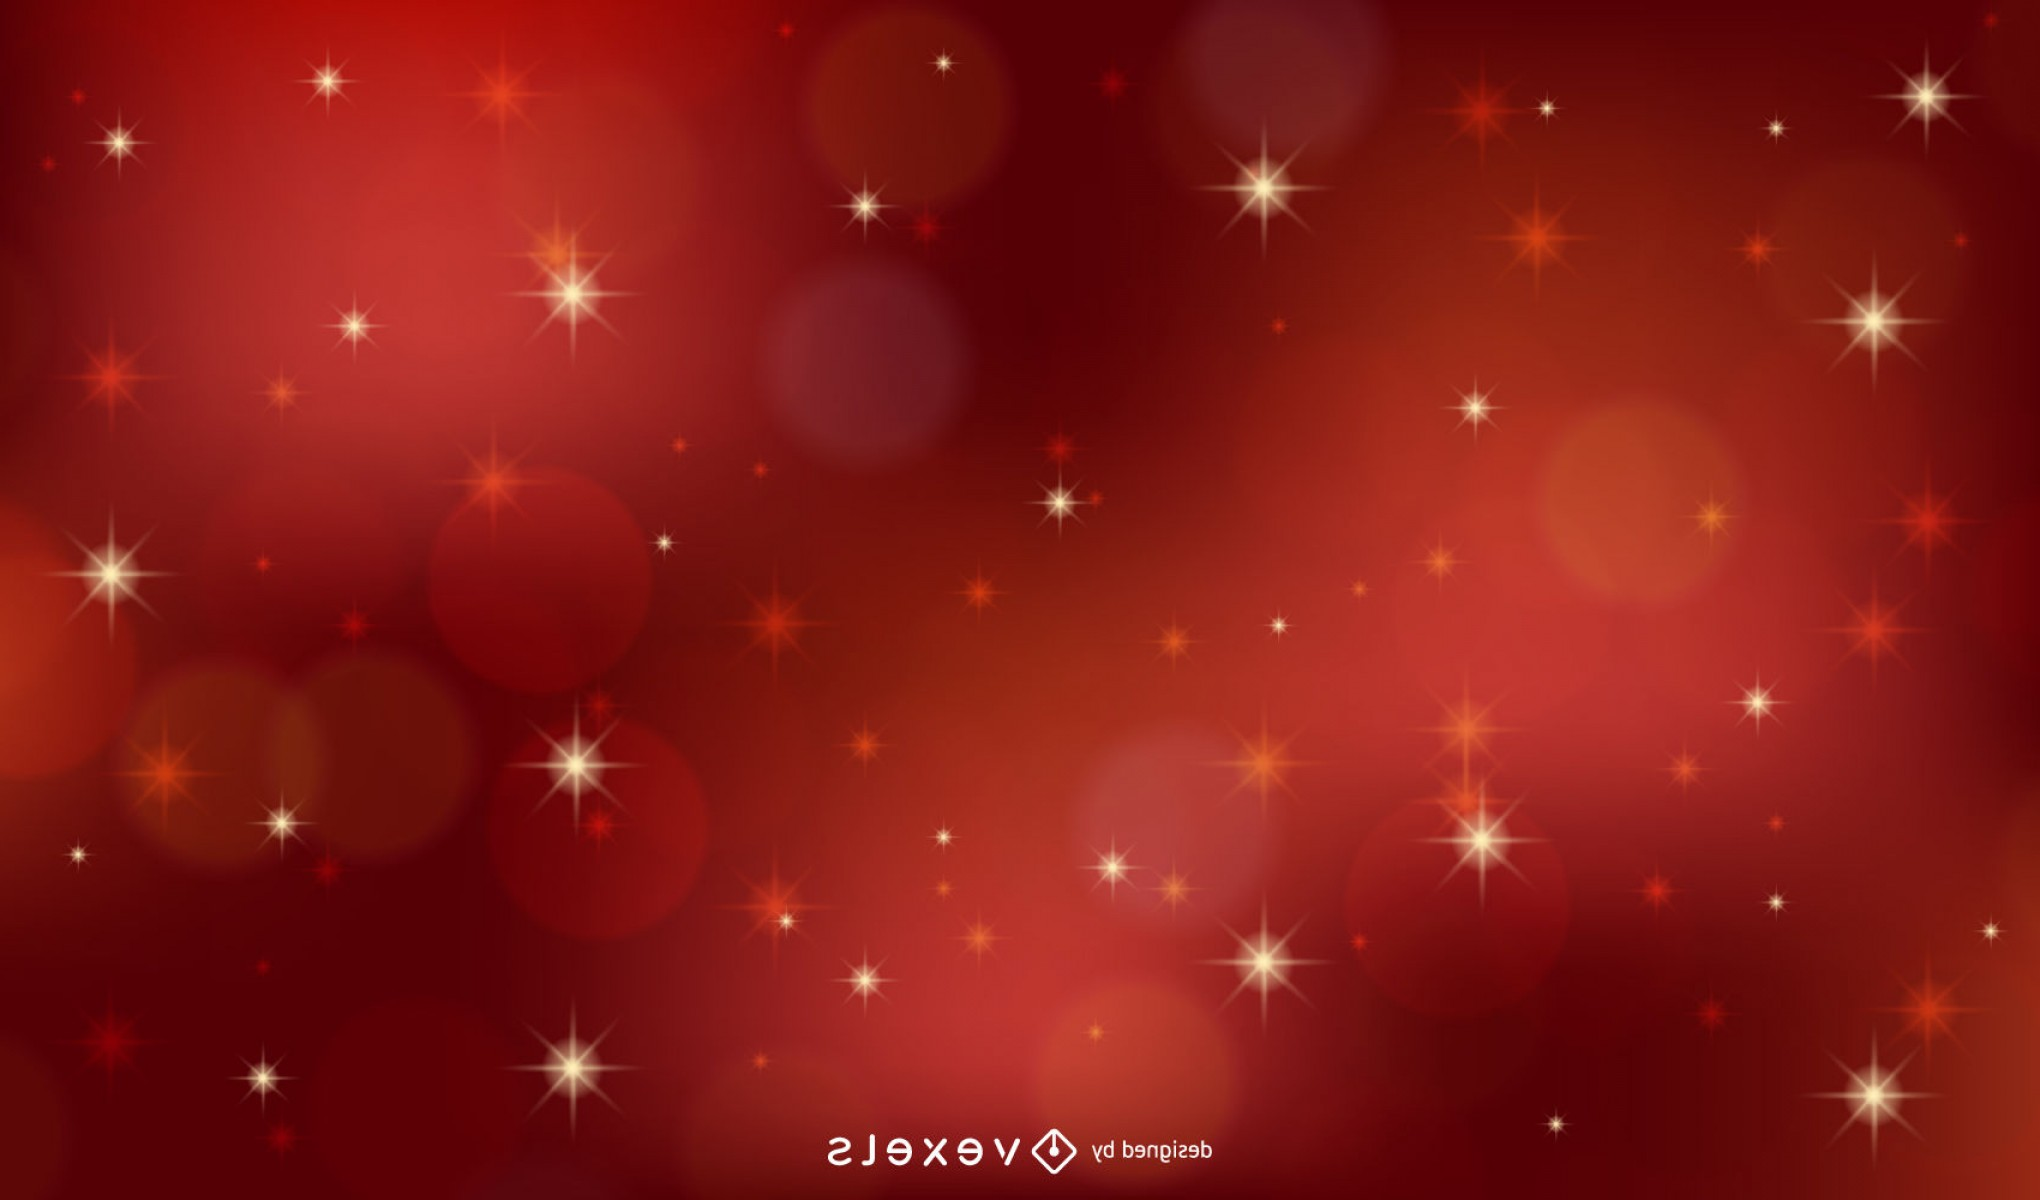 YouTube RedVector Real Life: Red Vector Xmas Background With Stars